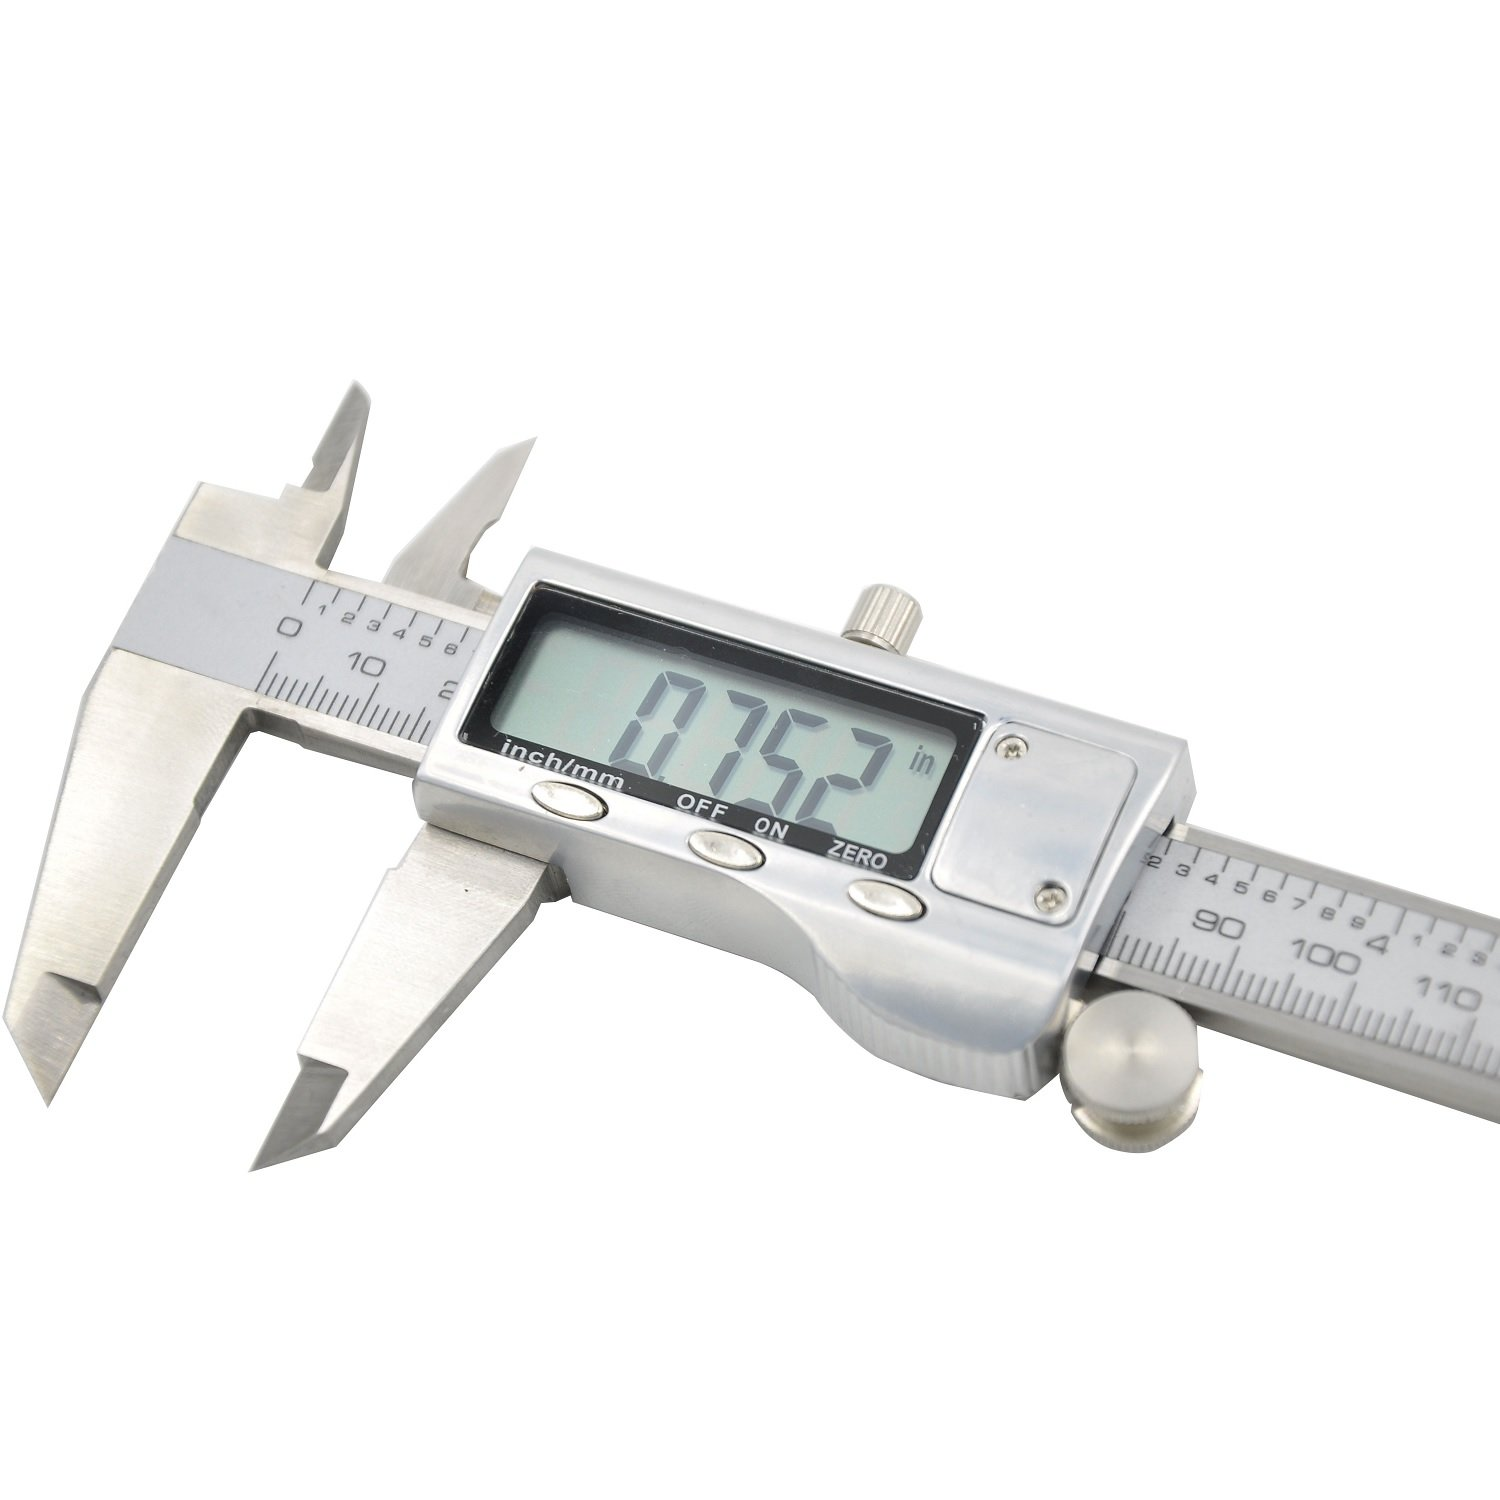 Electronic Digital Caliper - Bovini Caliper Measuring Tool in Inches & Millimeters Conversion 0-6 Inch/150 mm Stainless Steel Auto off Measuring Tool For Dimensions, Thickness, Depth, Diameter by Bovini (Image #2)